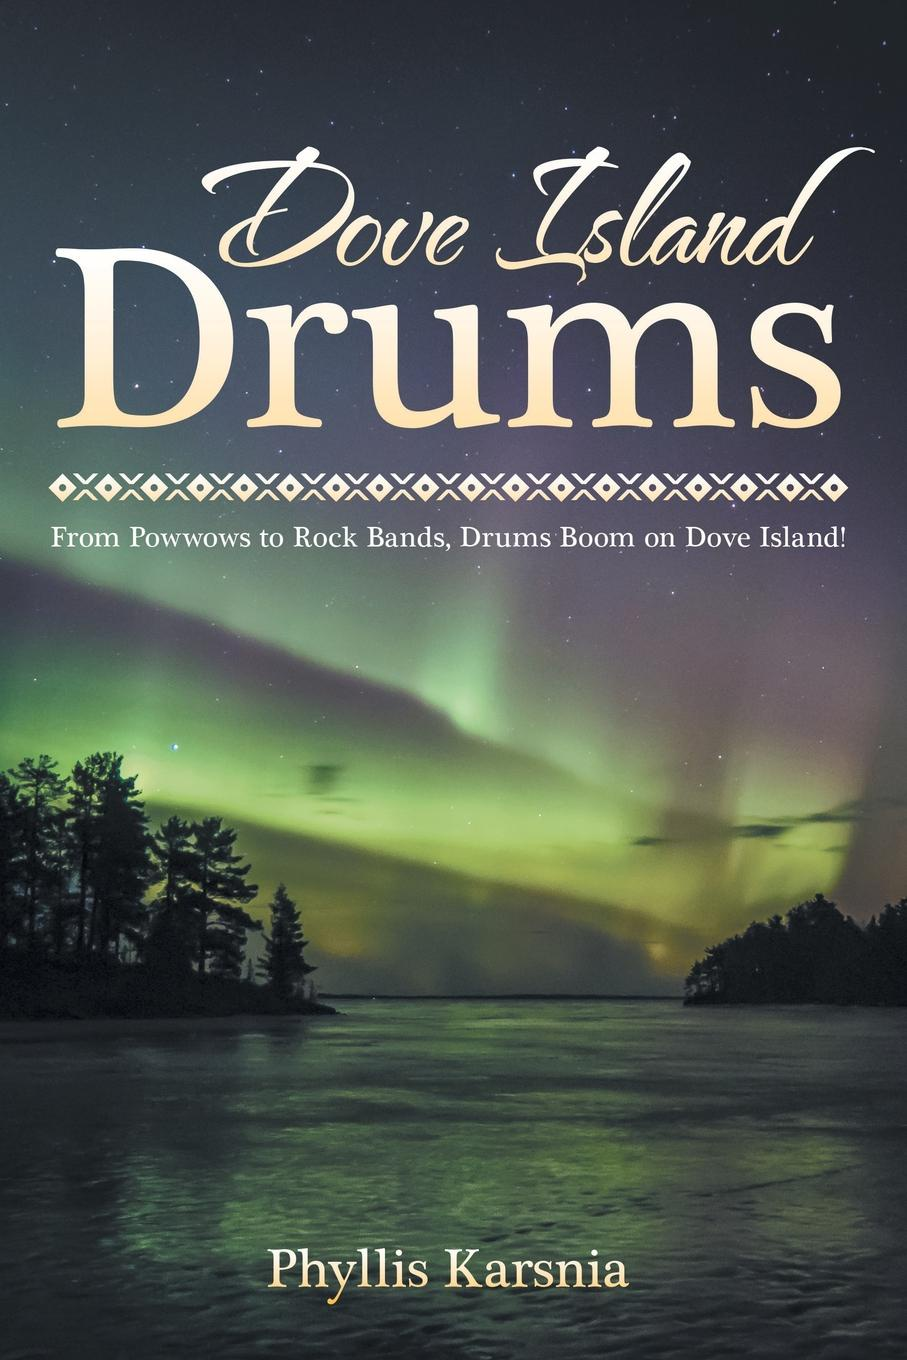 купить Phyllis Karsnia Dove Island Drums. From Powwows to Rock Bands, Drums Boom on Dove Island! по цене 1627 рублей